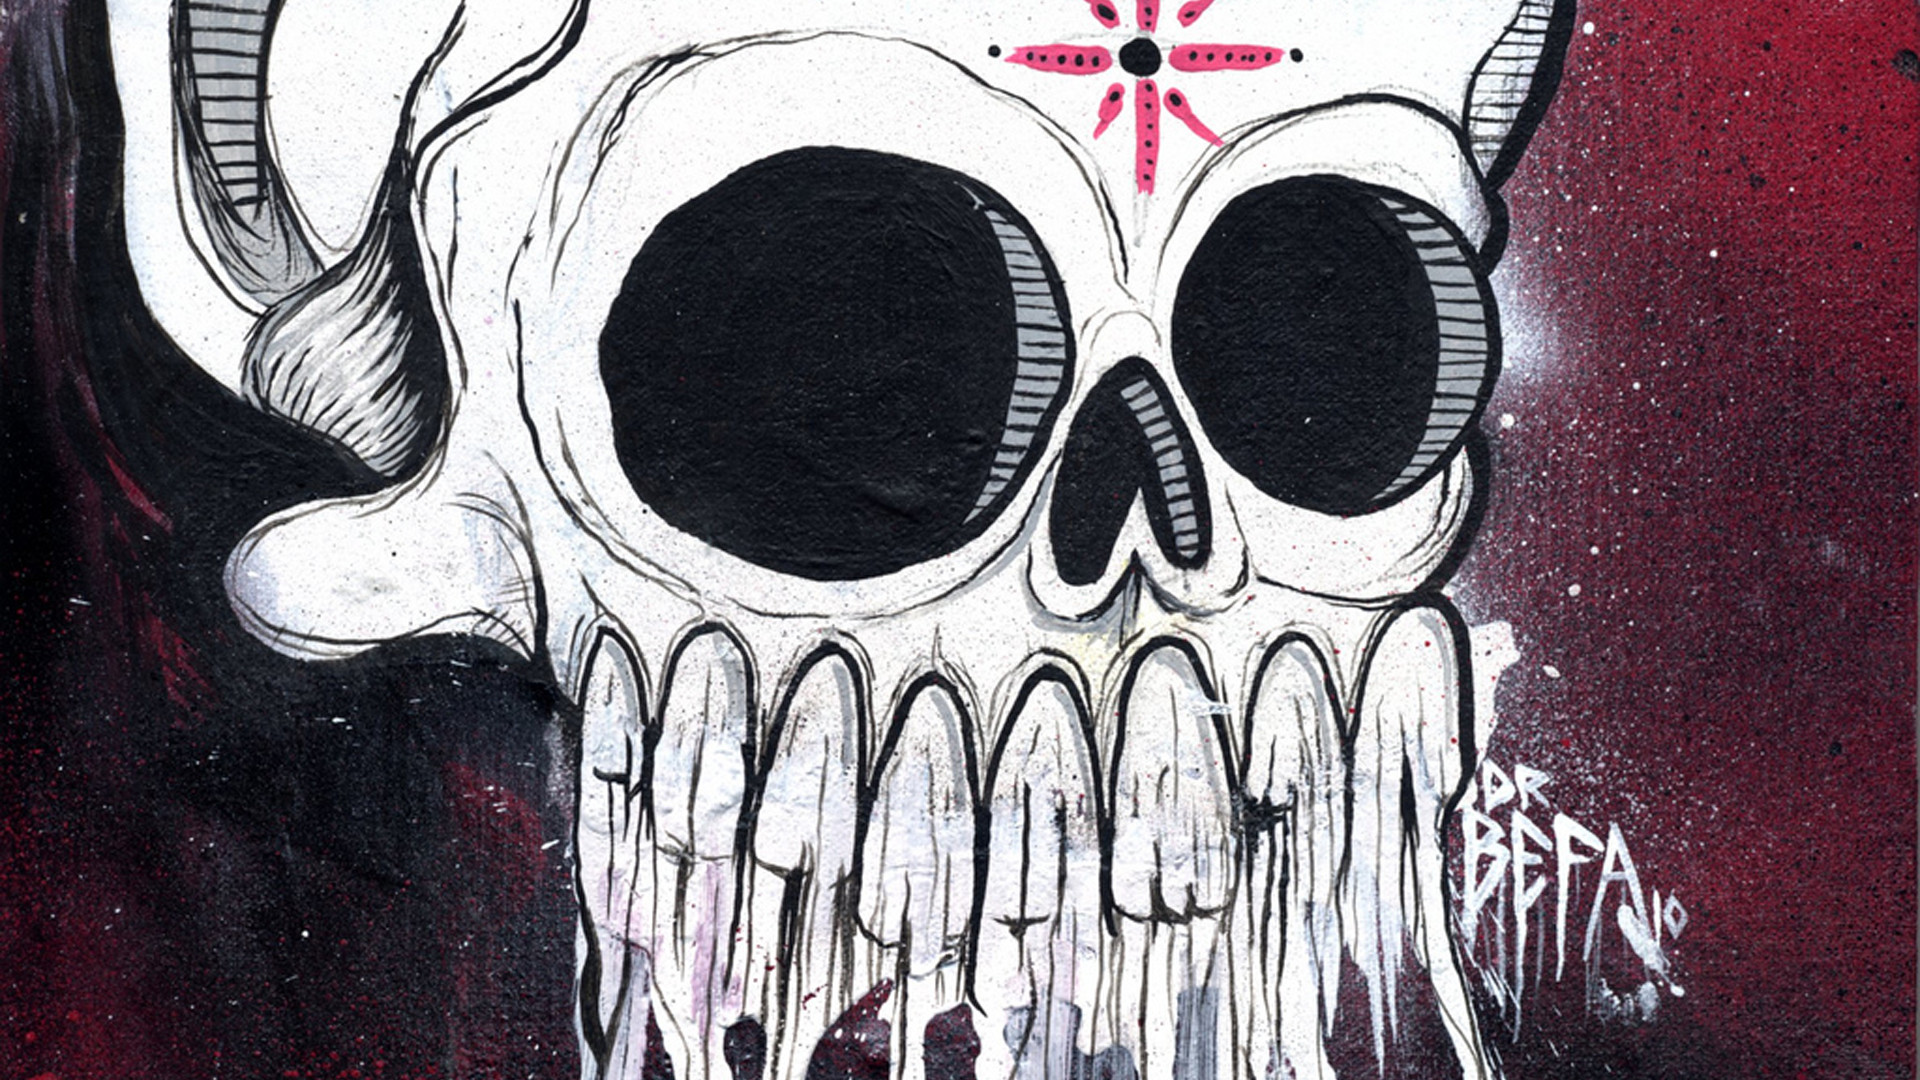 Spray Paint Skull Free Graffiti Skull Wallpapers, Free Graffiti Skull HD  Wallpapers